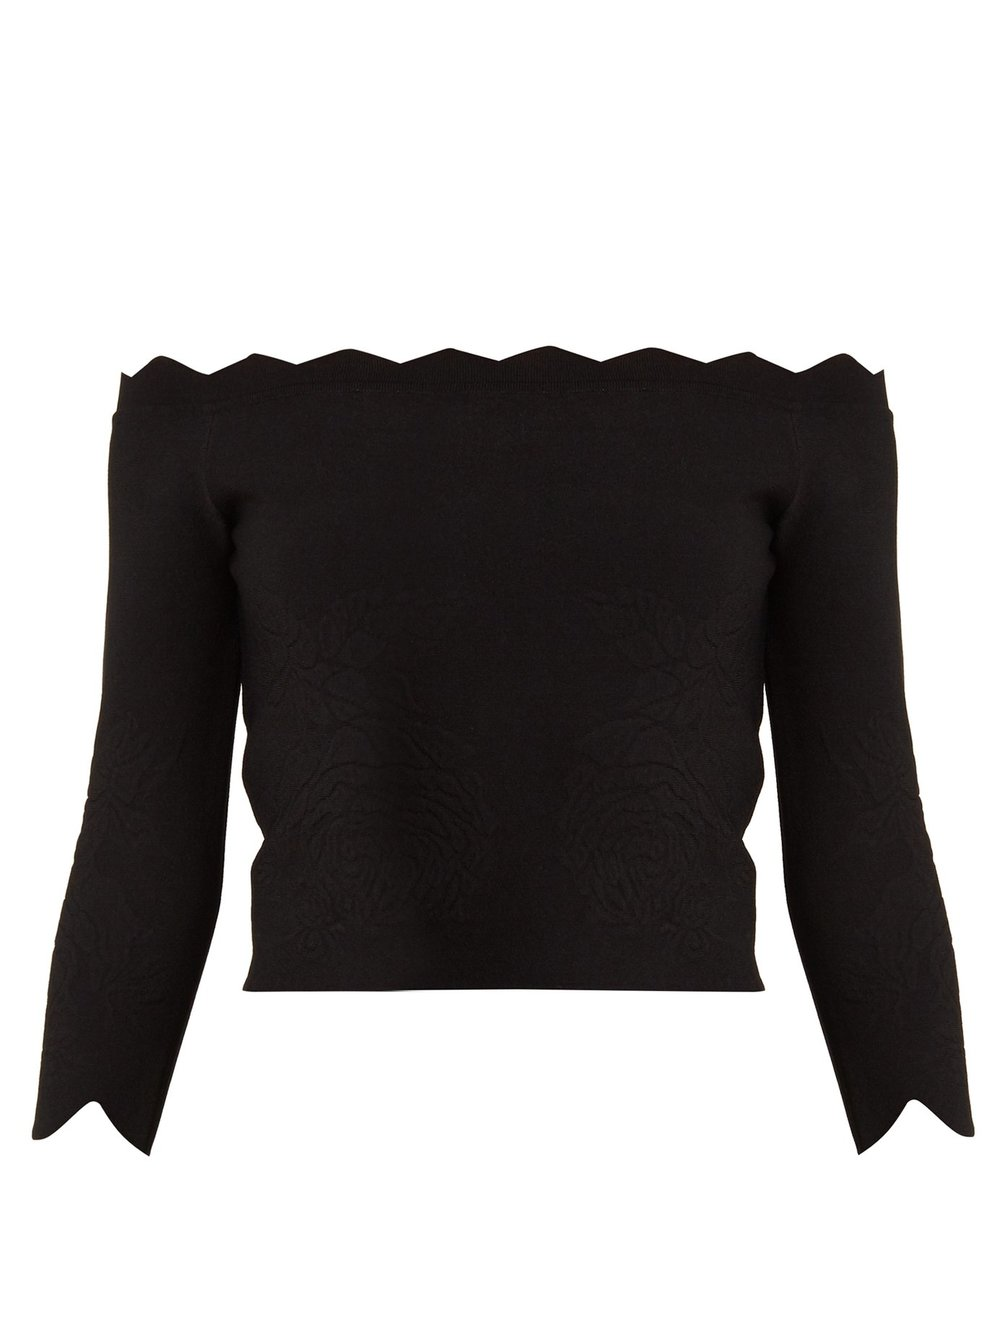 alexander_mcqueen_off_shoulder_top_petite_sizing_size_guide.jpg